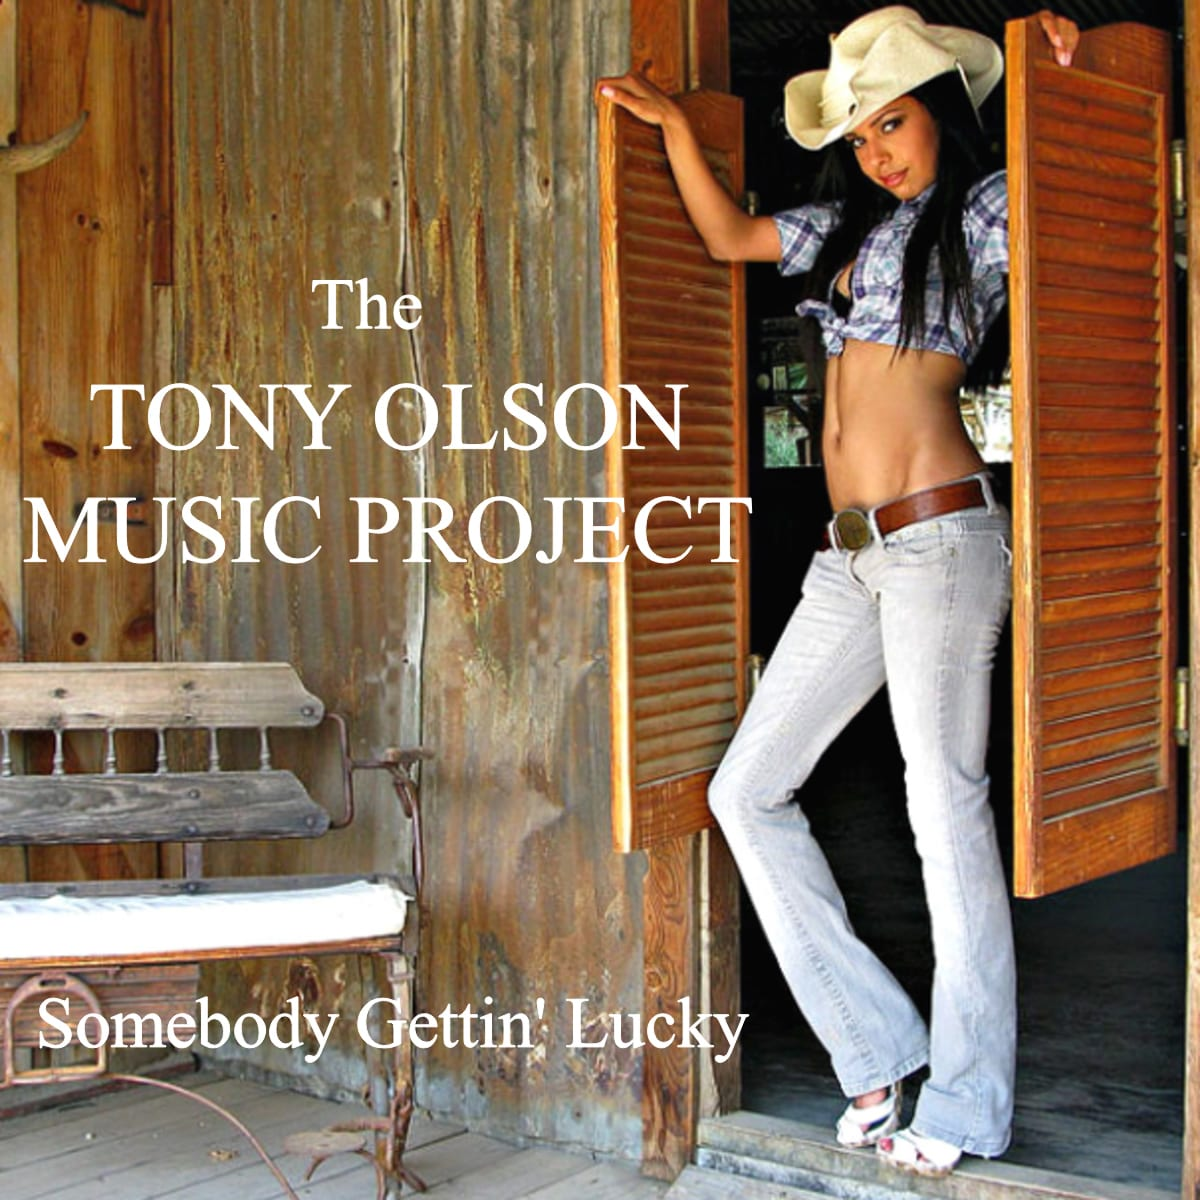 The Tony Olson Music Project - Somebody Gettin' Lucky